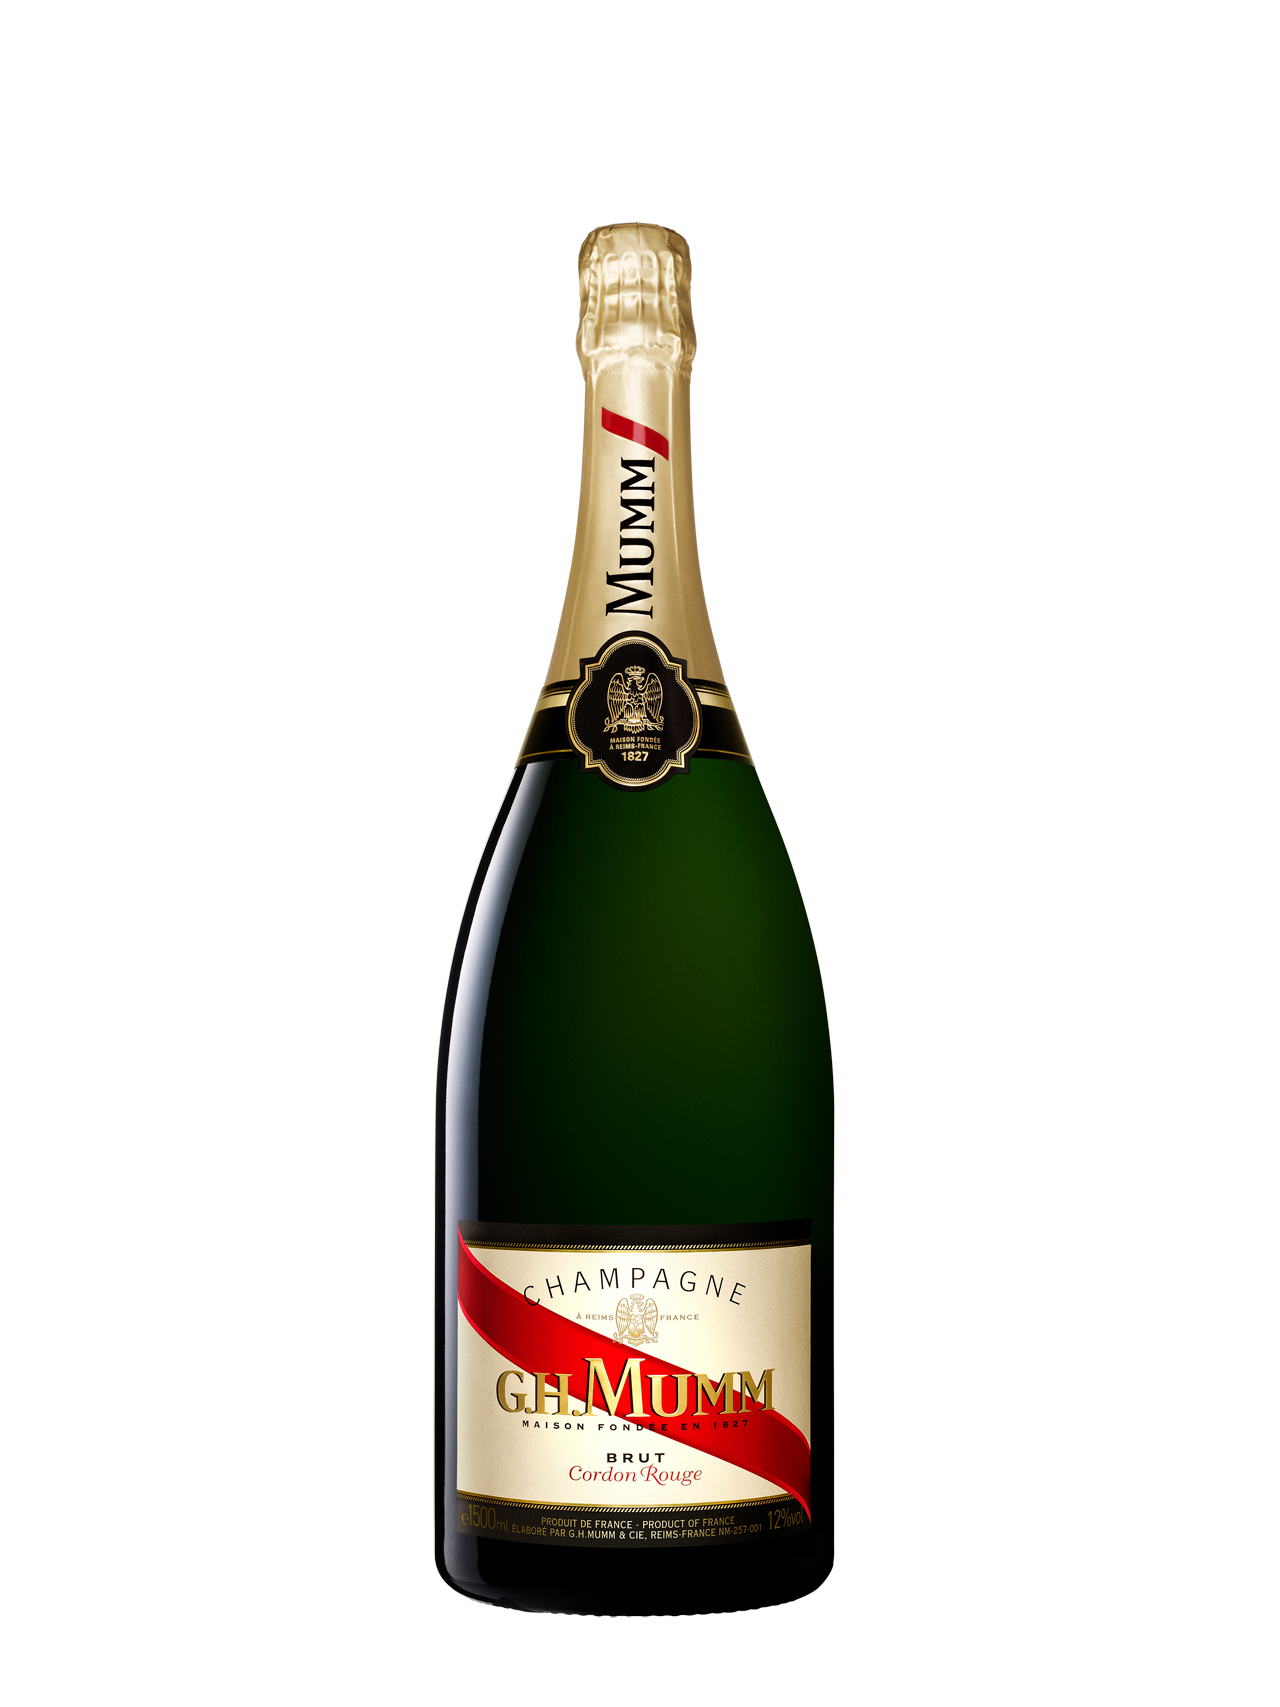 G.H Mumm 'Cordon Rouge' Champagne Magnum NV (3 x 1500mL), France.